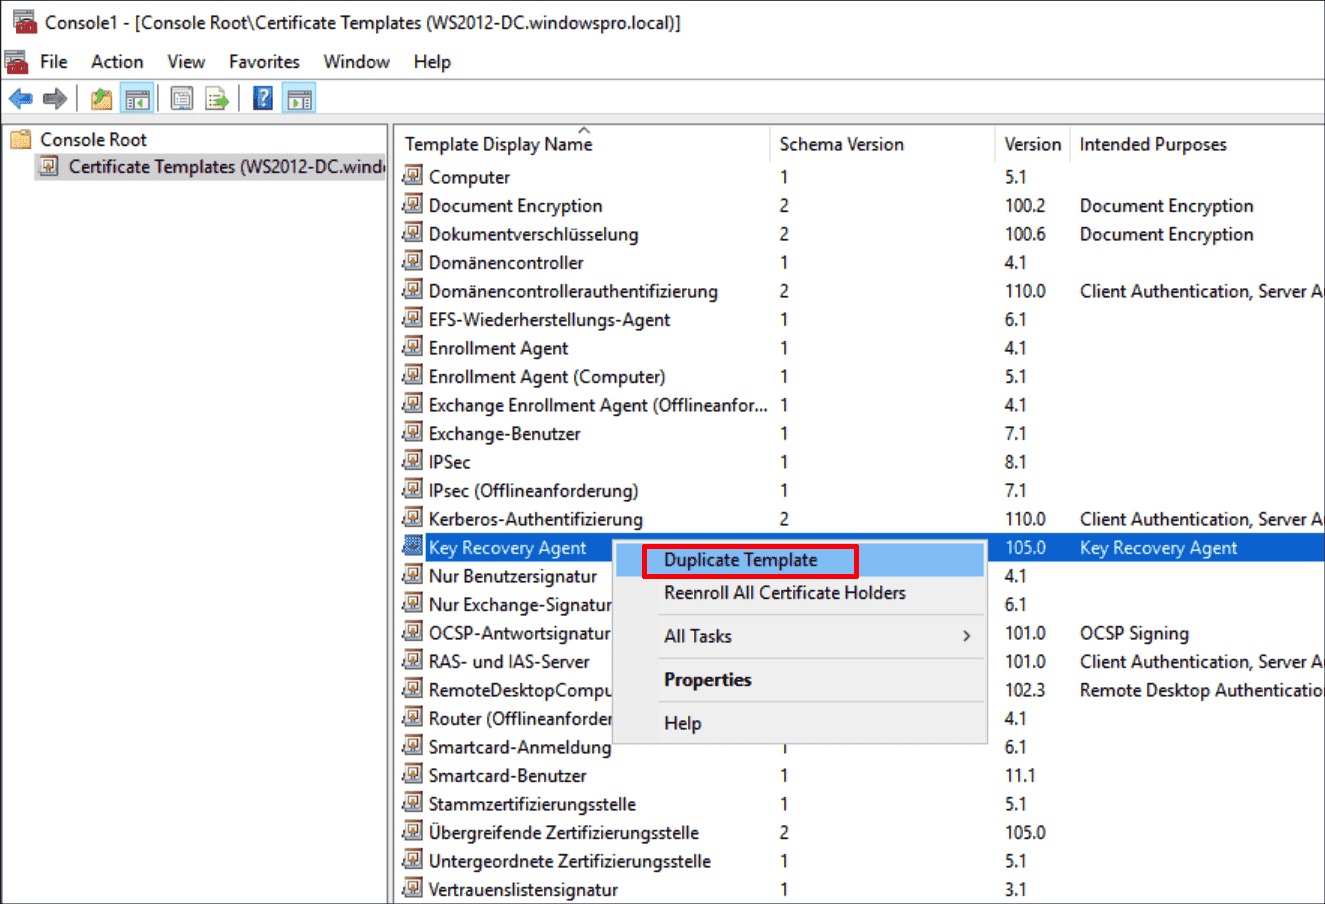 Create a new template based on Key Recovery Agent